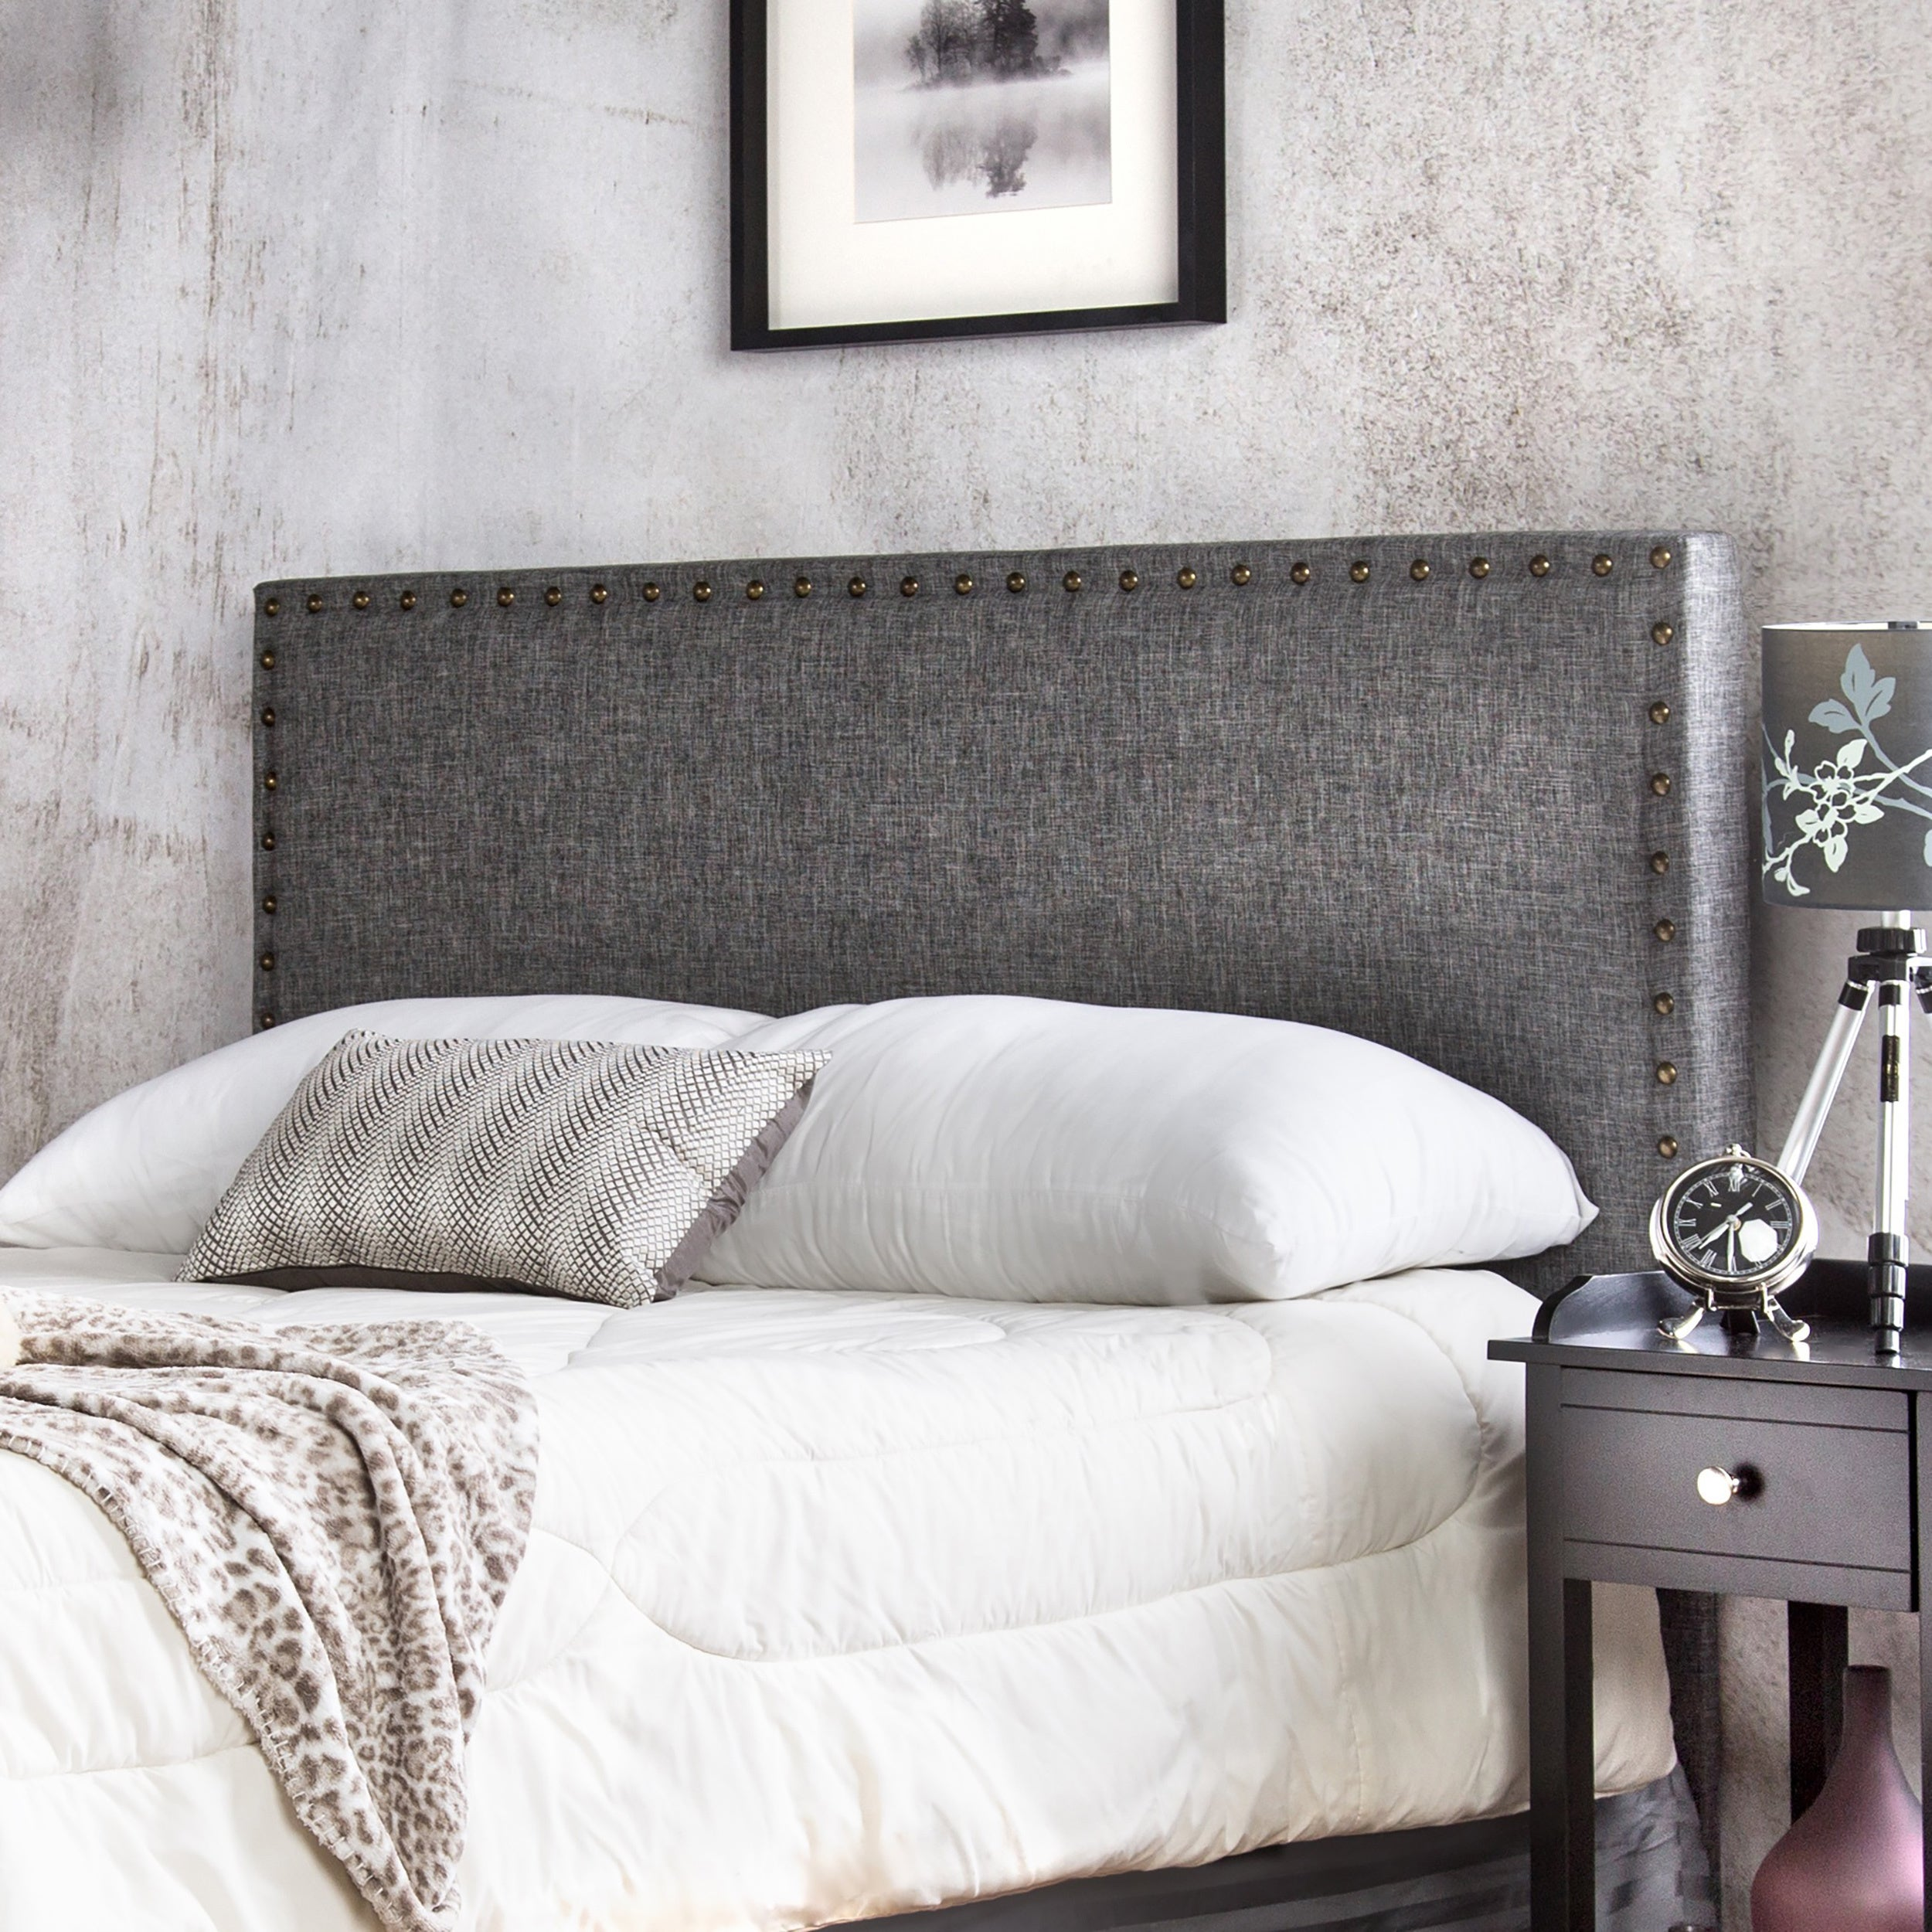 trim with nailhead img so upholstered watermarked pretty headboard tutorial pages